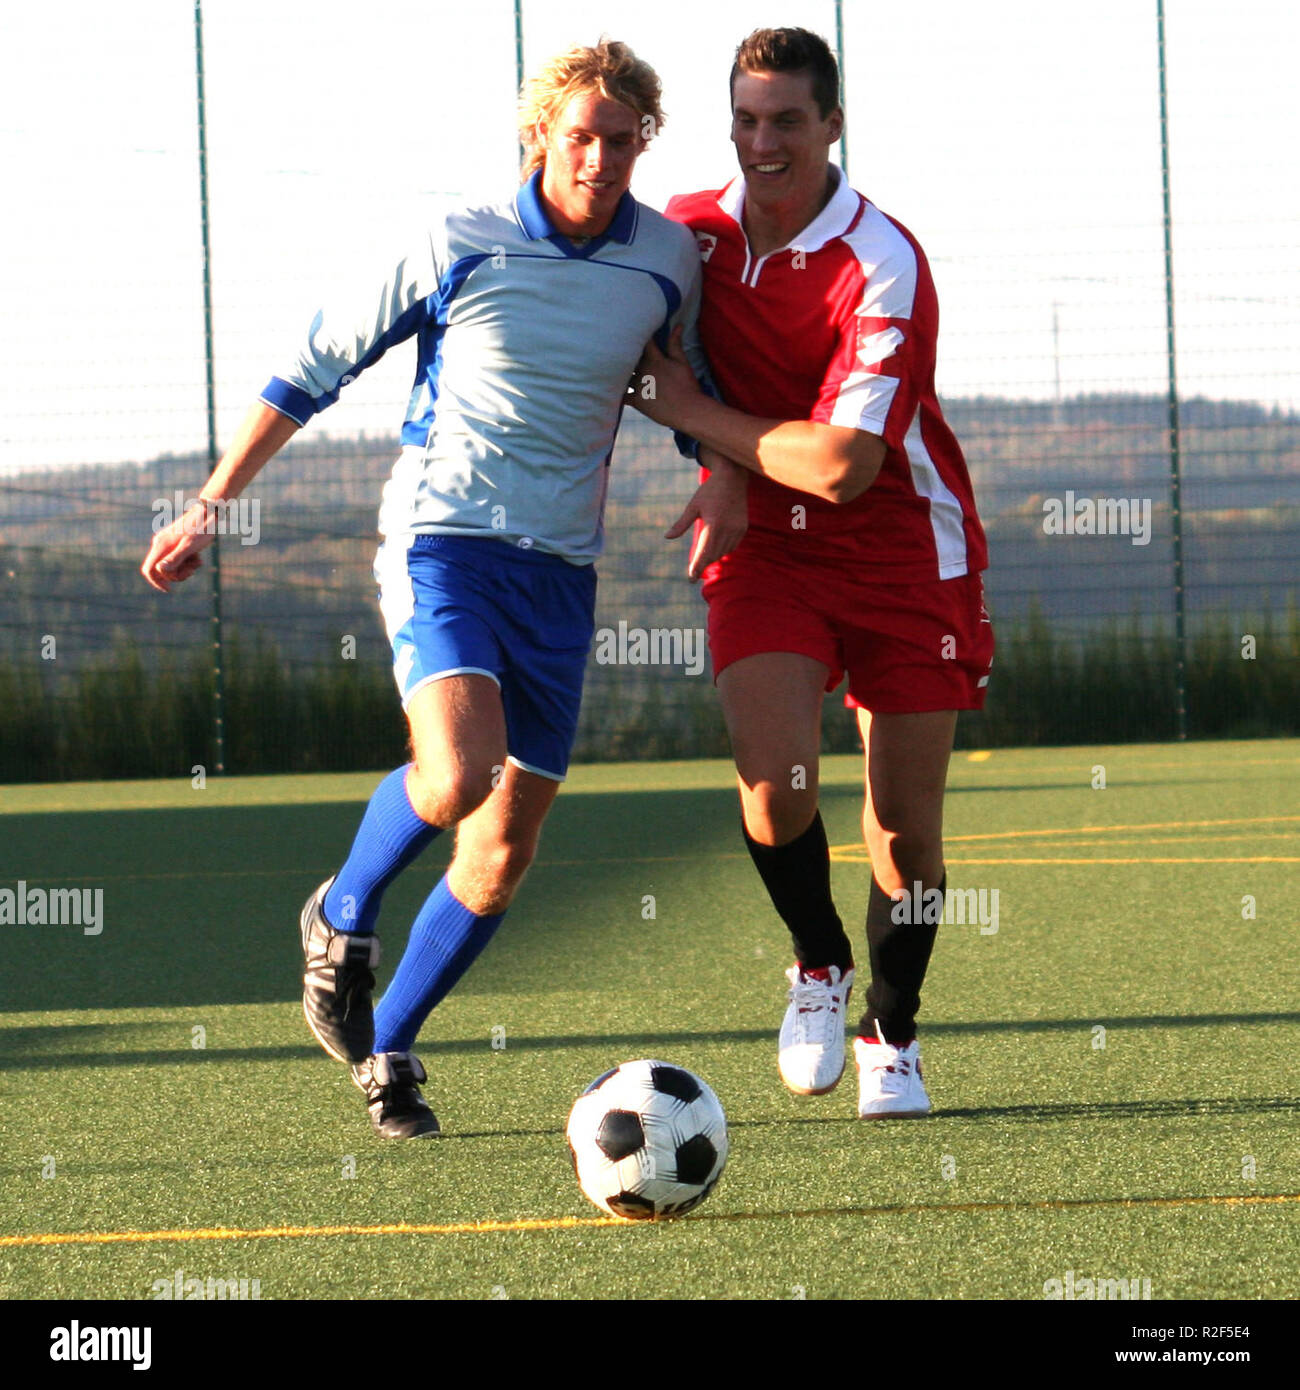 in the duel for the ball vii - Stock Image